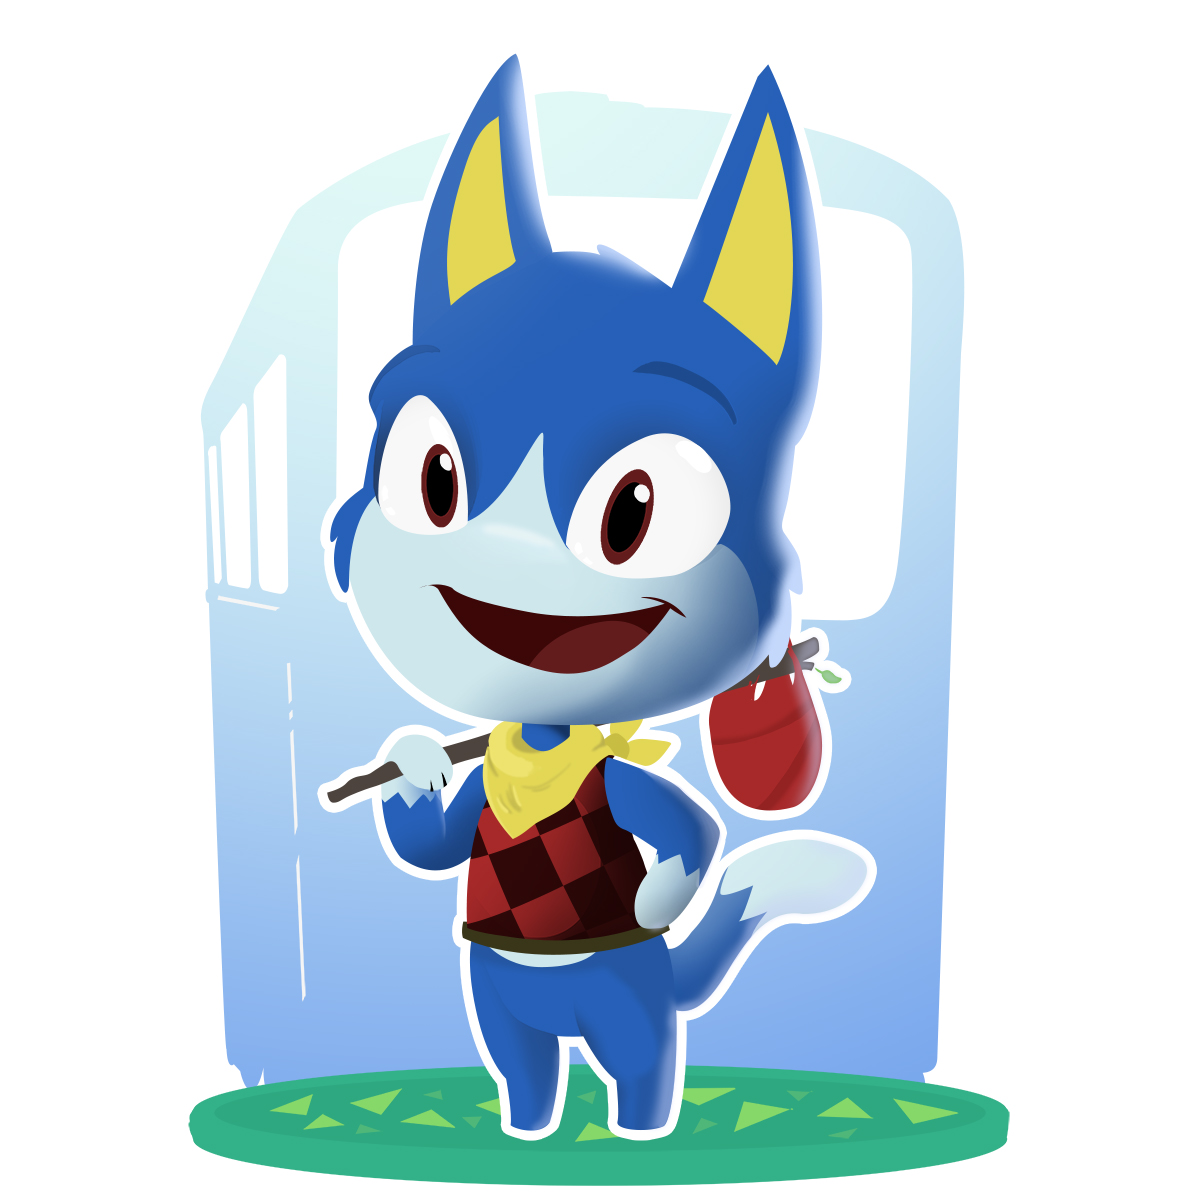 Daily Xing, 31 Animal Crossing Characters in 31 days.